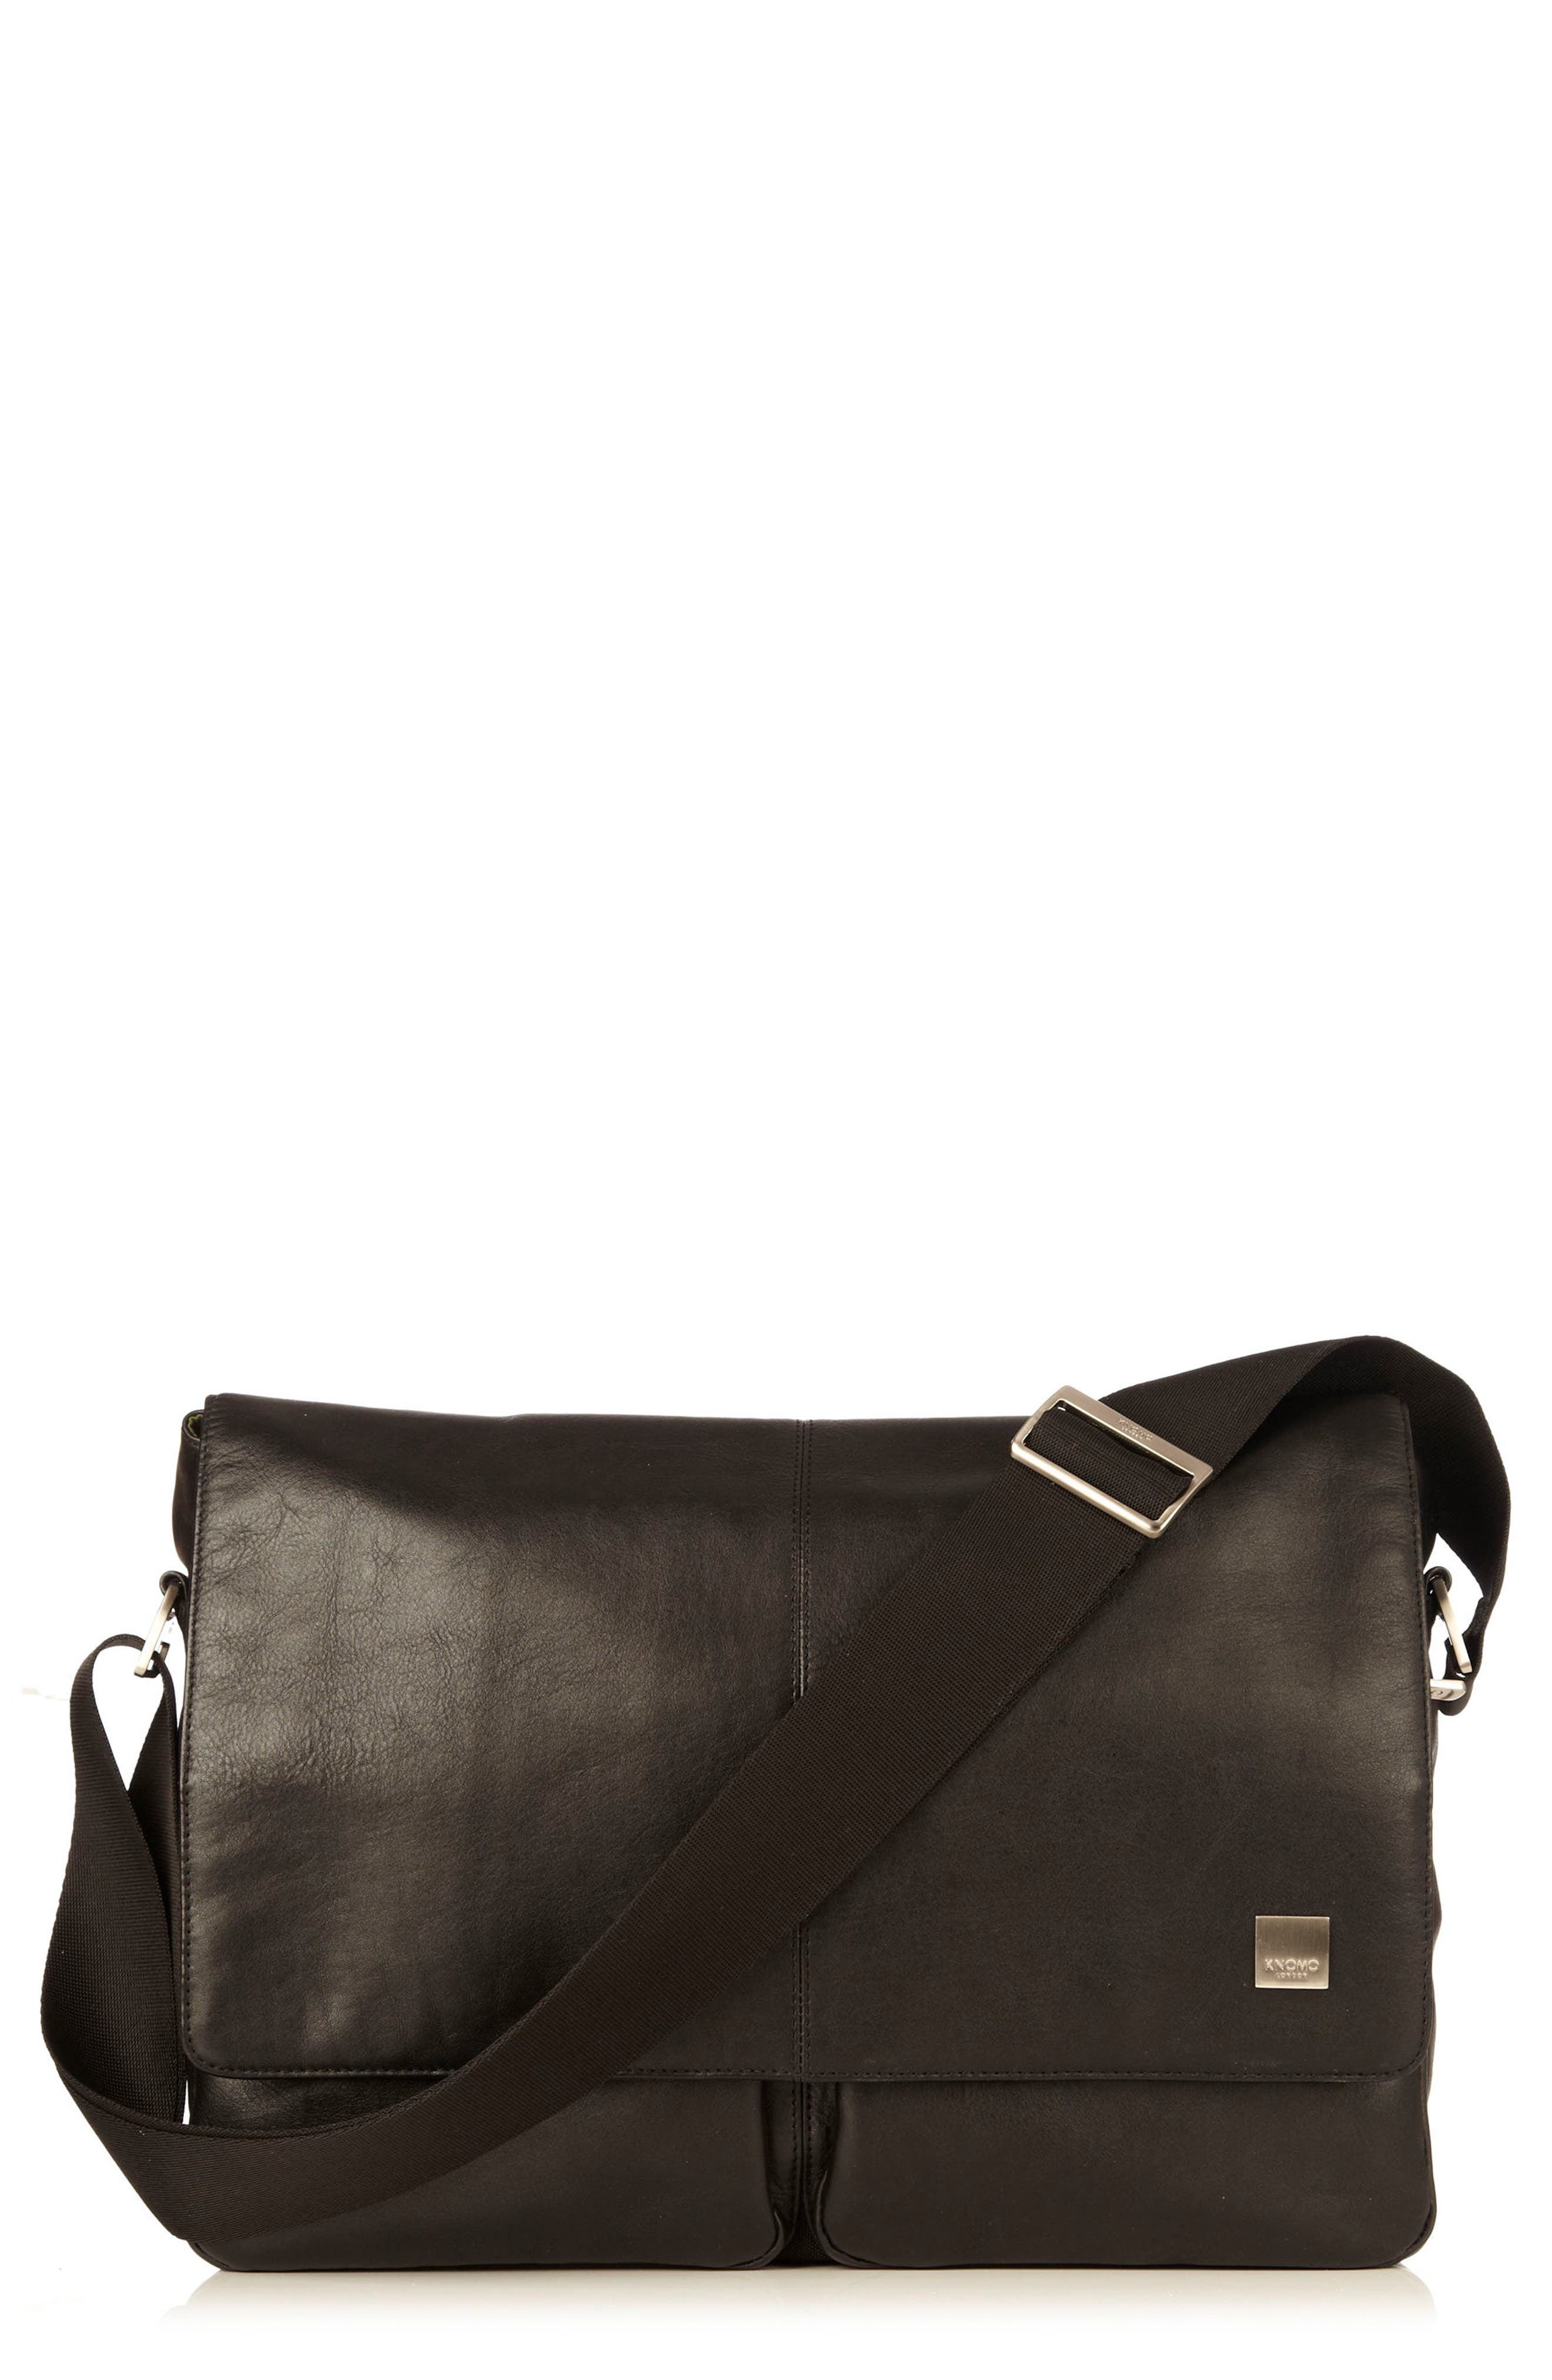 KNOMO London Brompton Kobe RFID Leather Messenger Bag